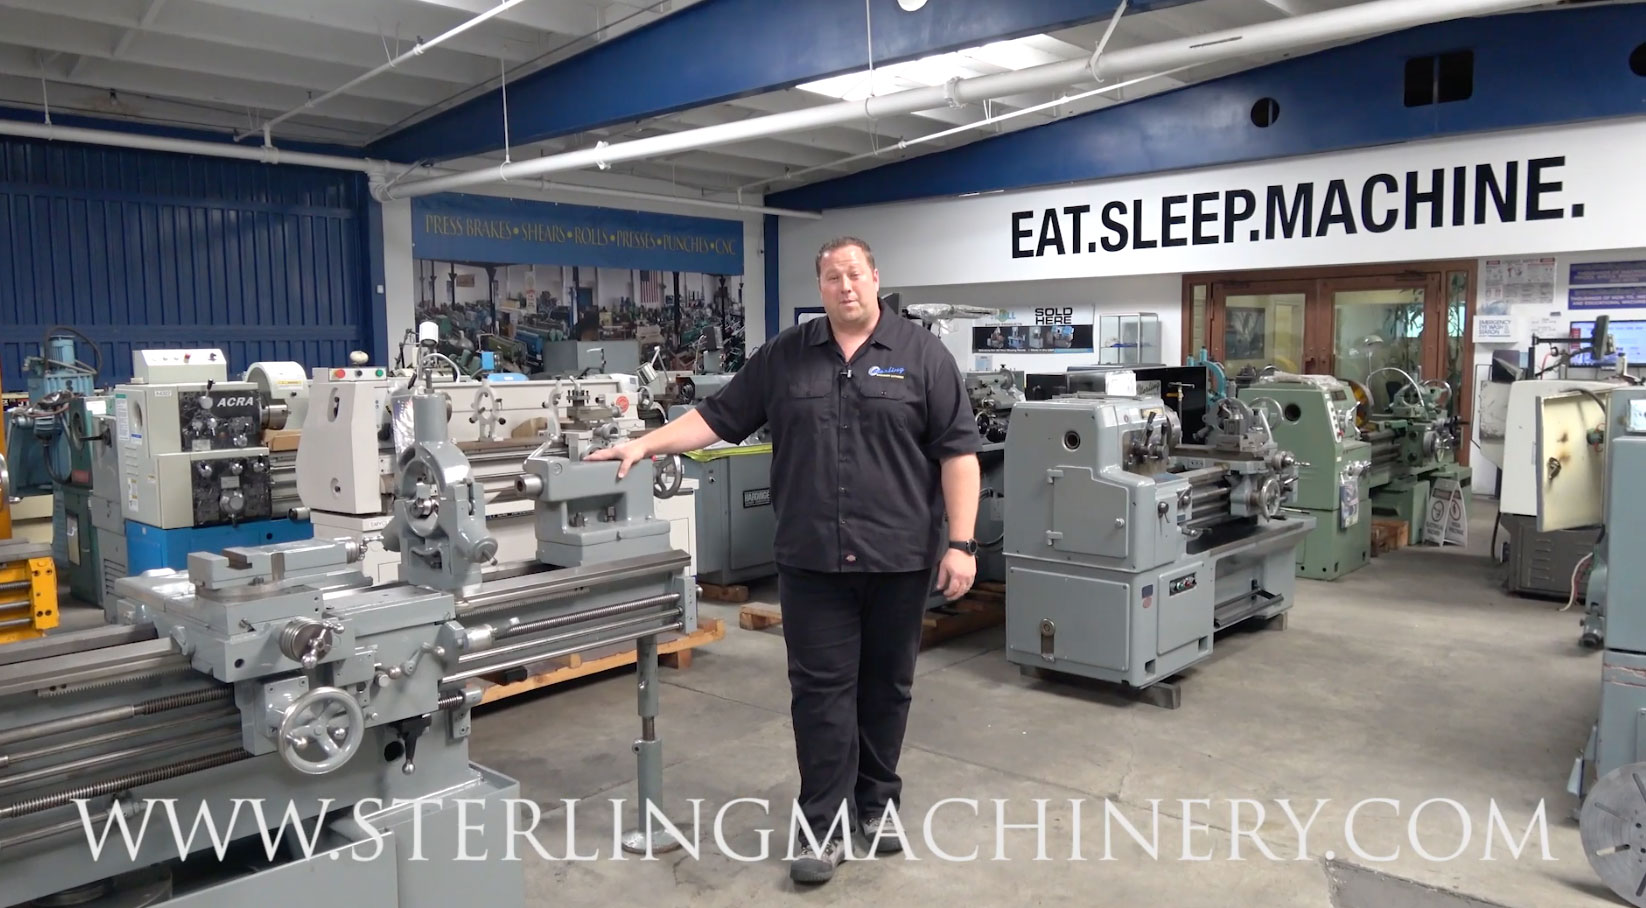 Industrial Regal Machinery Videos Of Dealer Machine Tools Showing Used Lathe